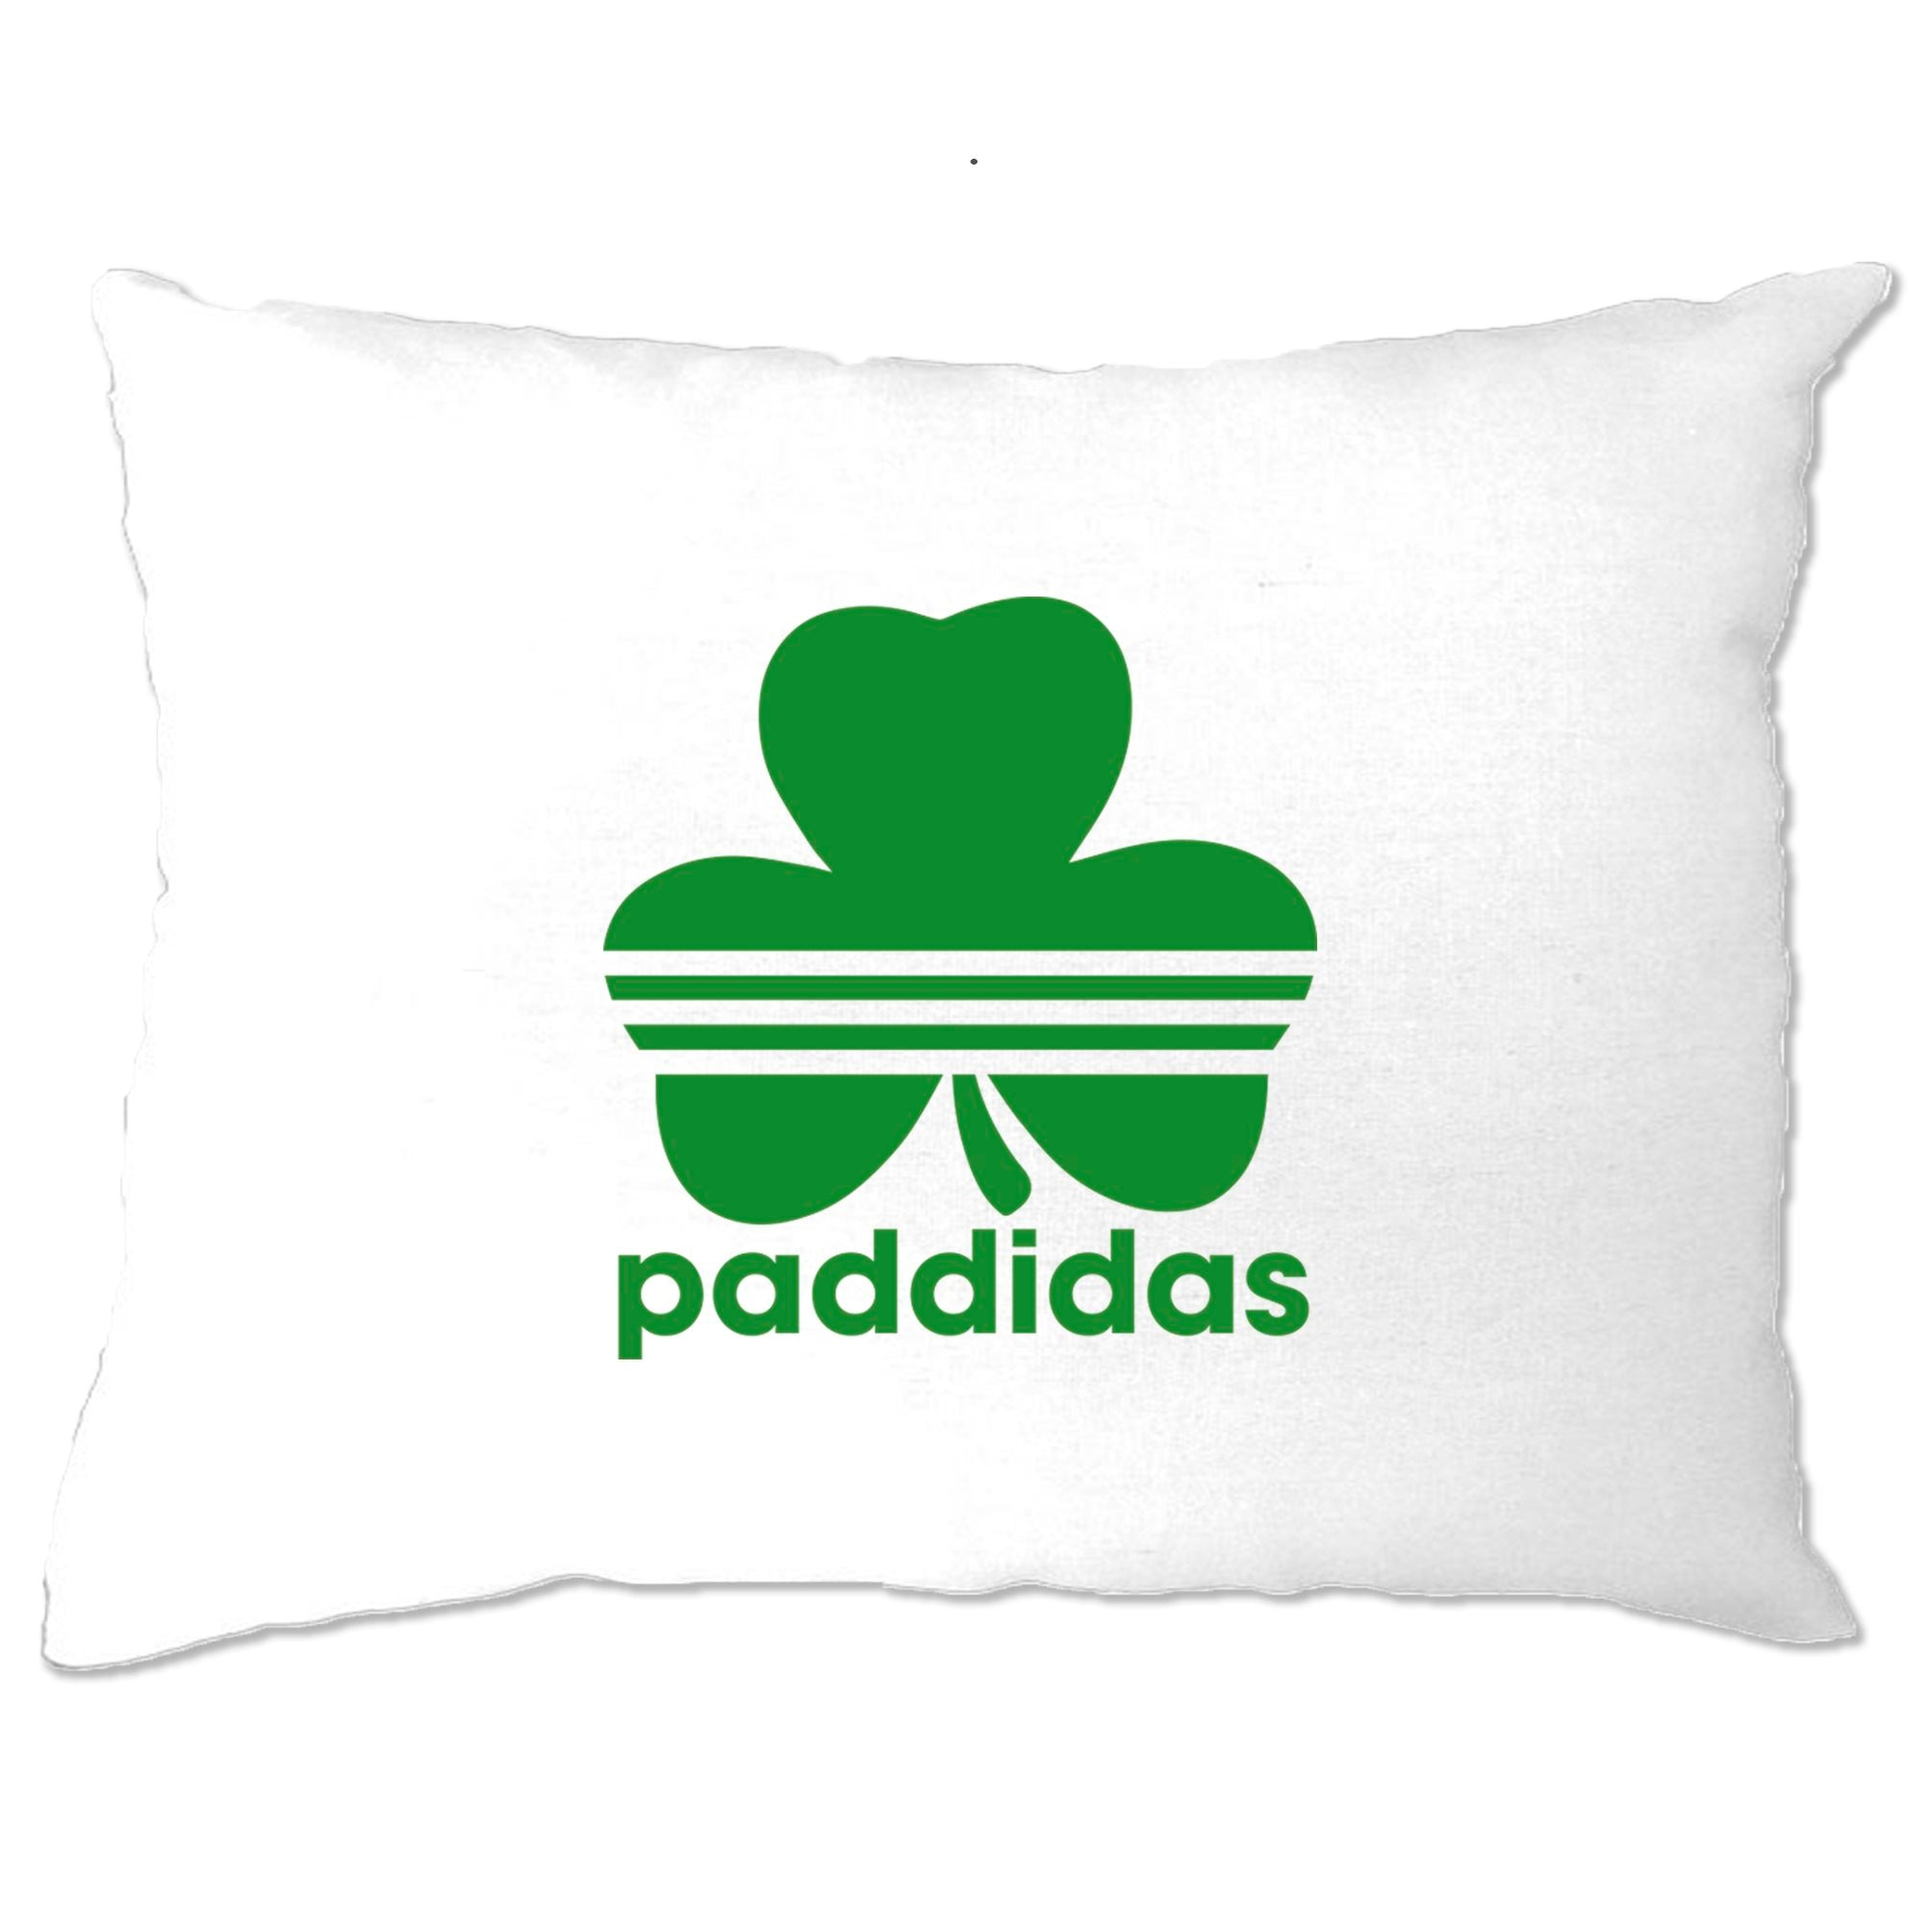 St Patricks Day Pillow Case Paddidas Paddy Irish Sport